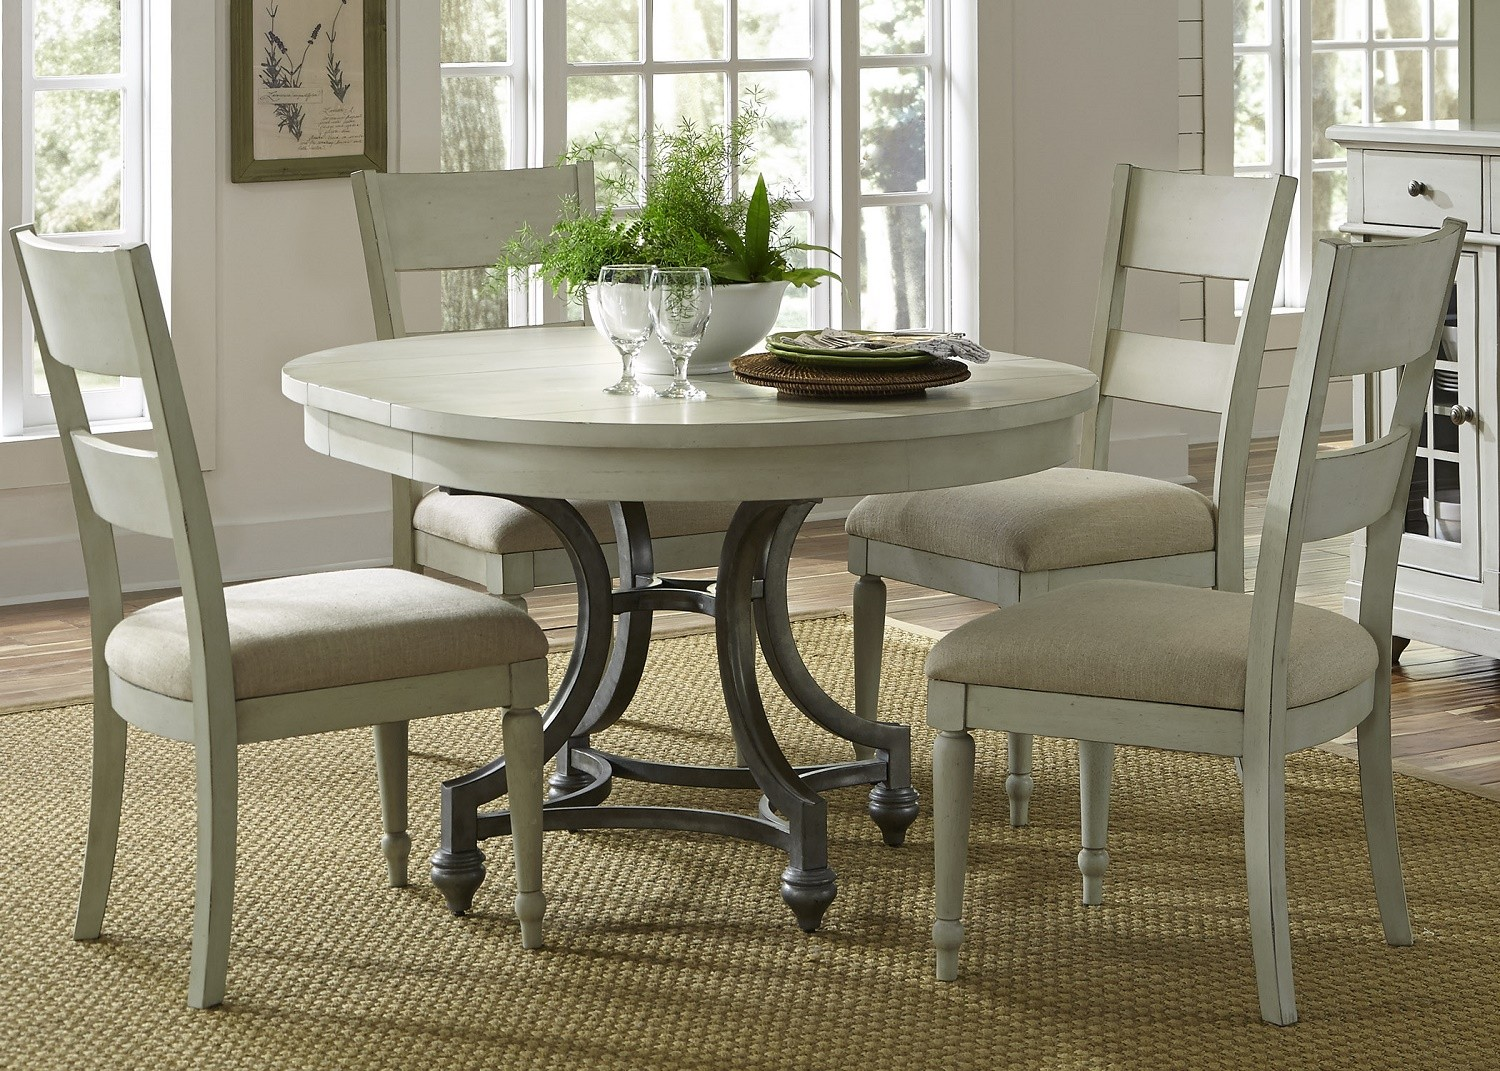 Harbor View Iii Round Extendable Dining Room Set From Liberty 731 T4254 Coleman Furniture